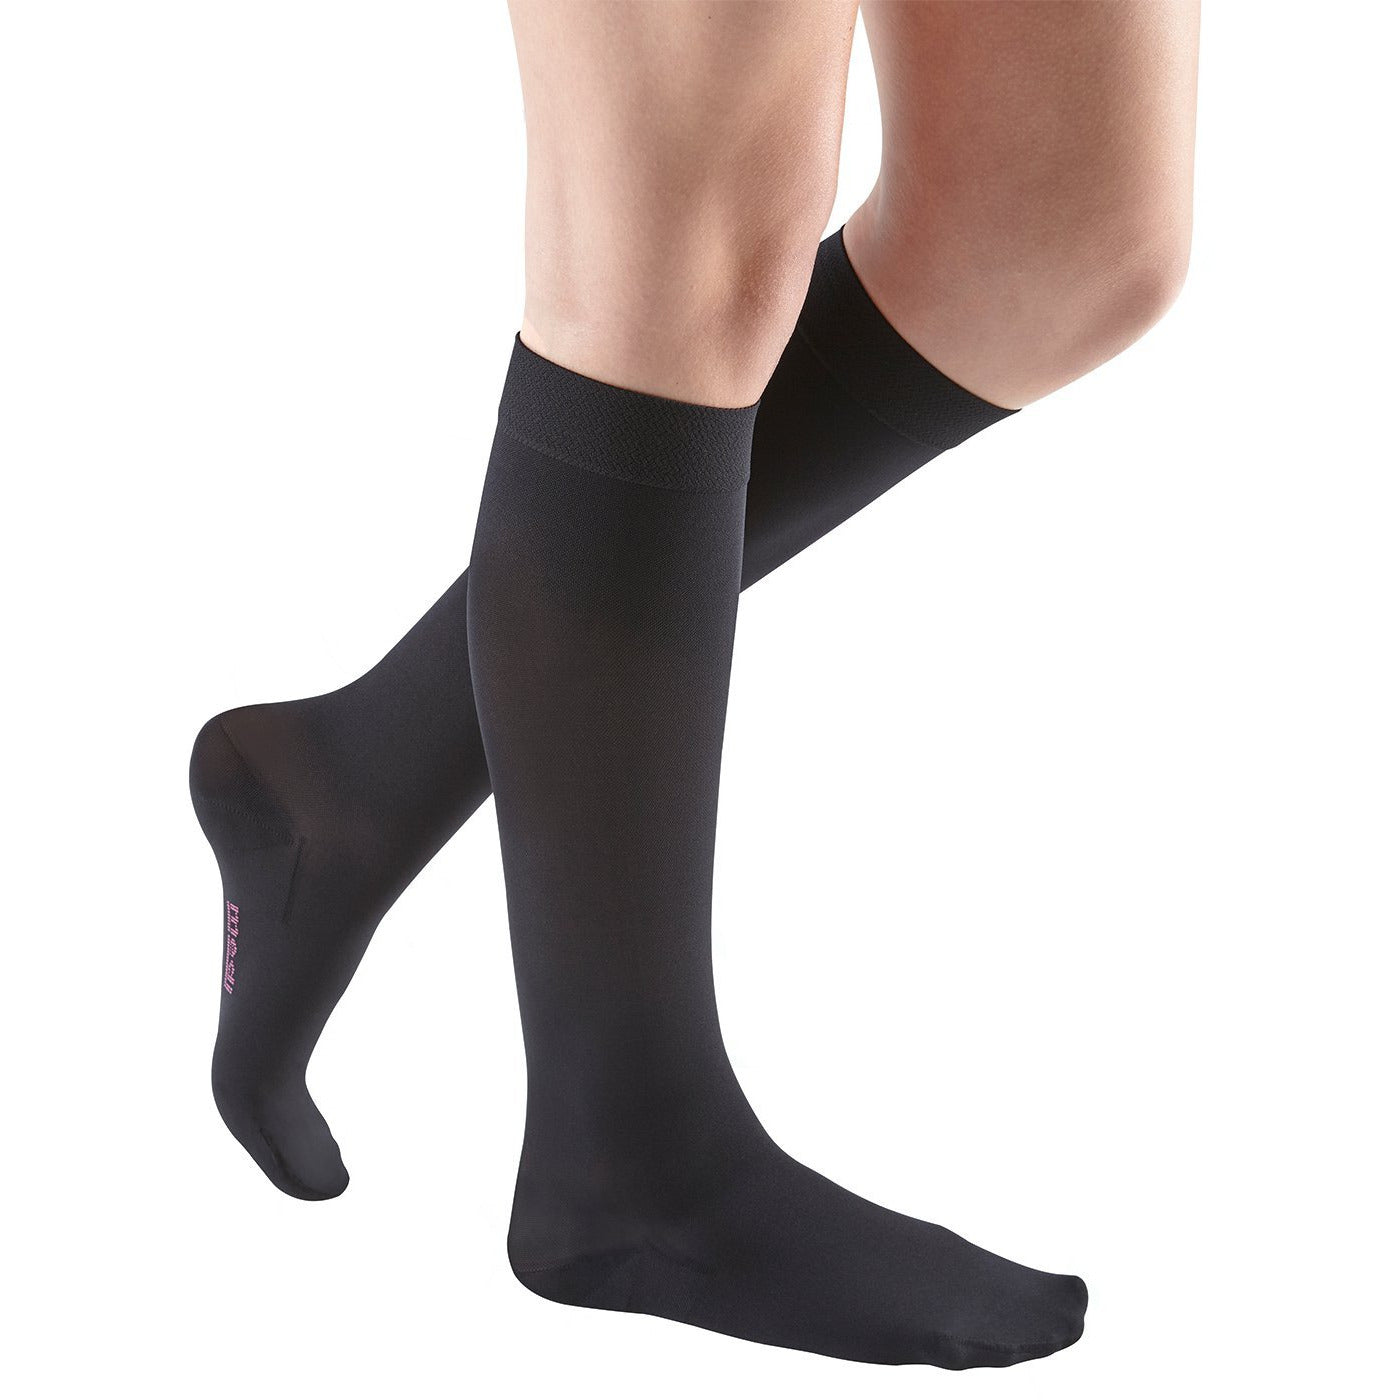 0fa0189a1a7 Medi Comfort Support Knee Highs 30-40mmHg - Wide Calf — BrightLife Direct